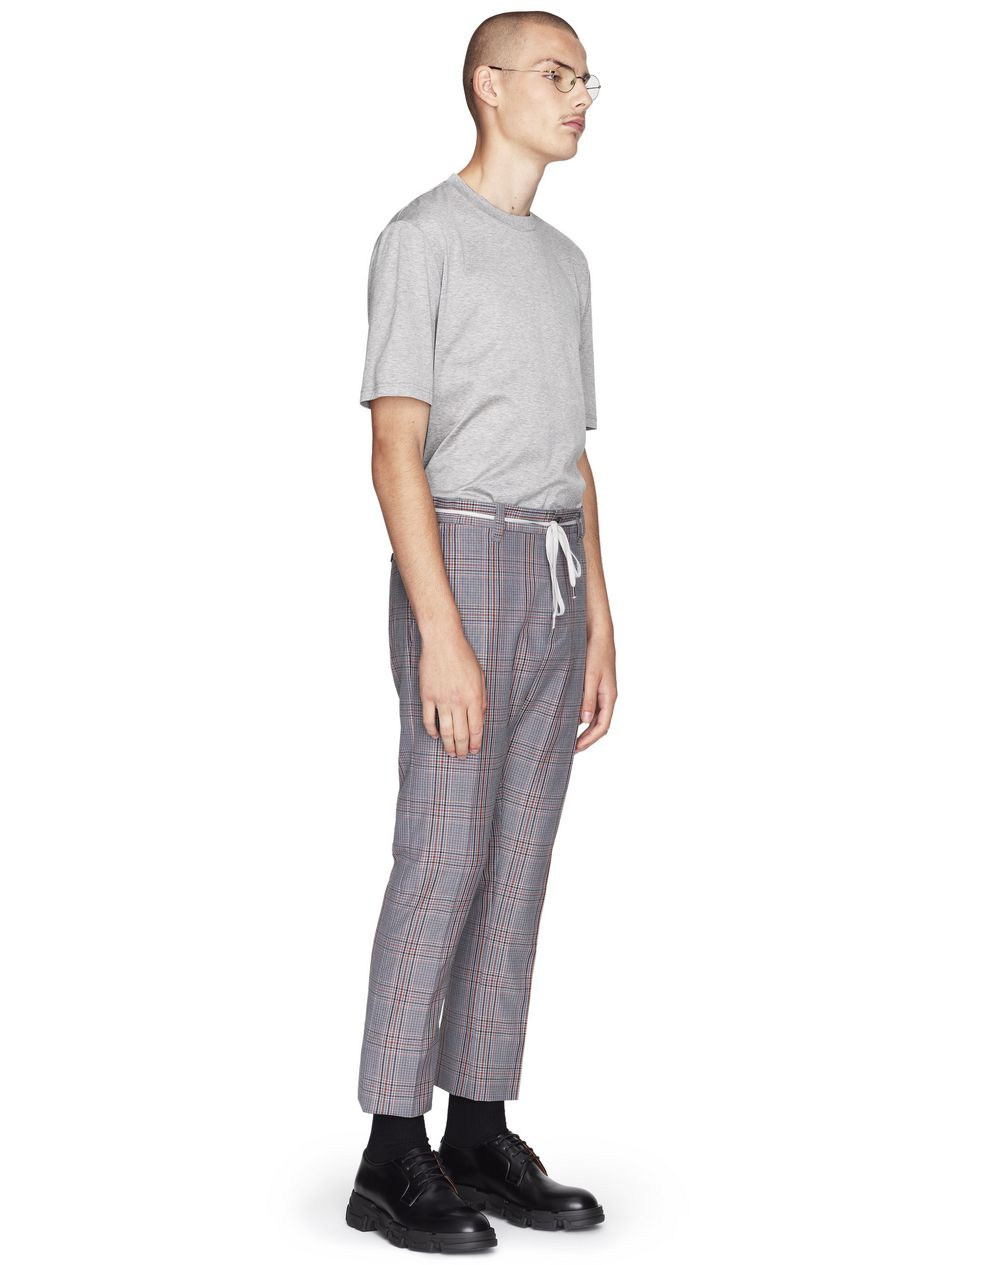 FITTED DRAWSTRING TROUSERS - Lanvin